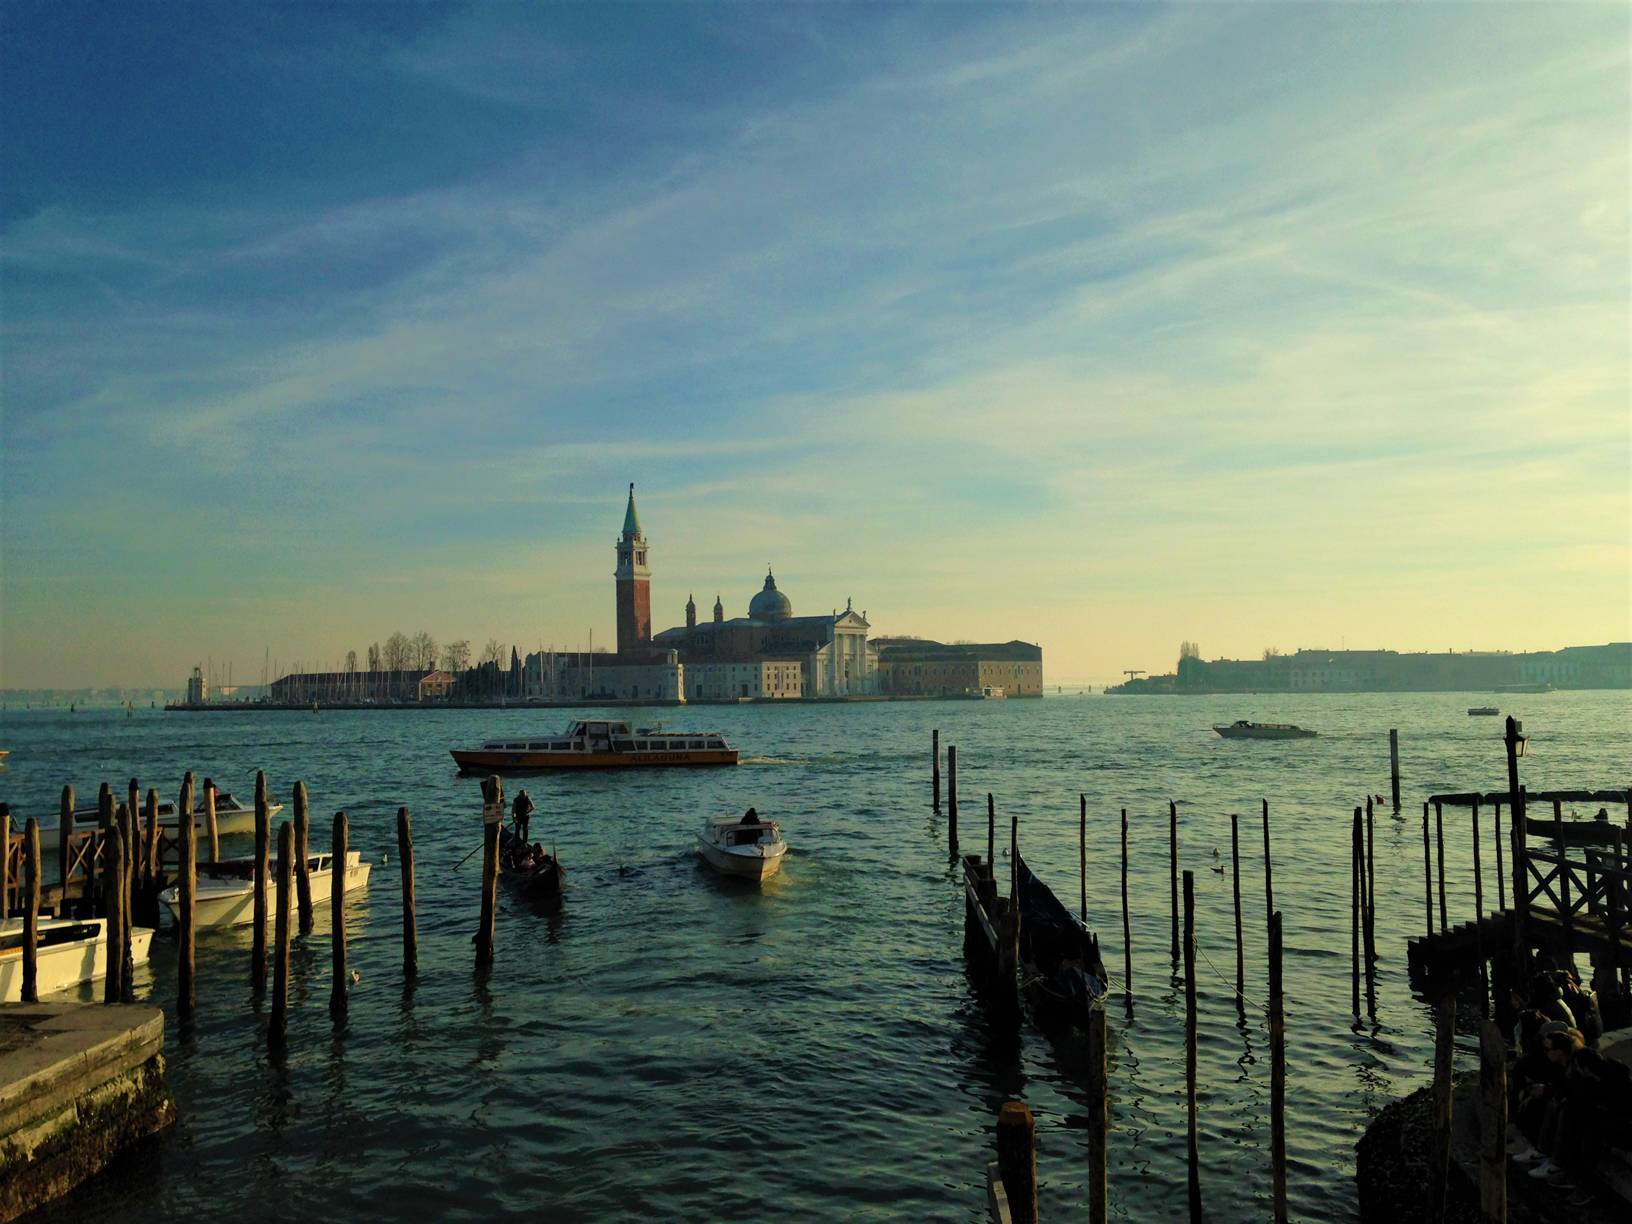 View of San Giorgio Maggiore from across the sea near St. Mark's square in Venice, Italy. Boats and gondolas are seen in the sea.